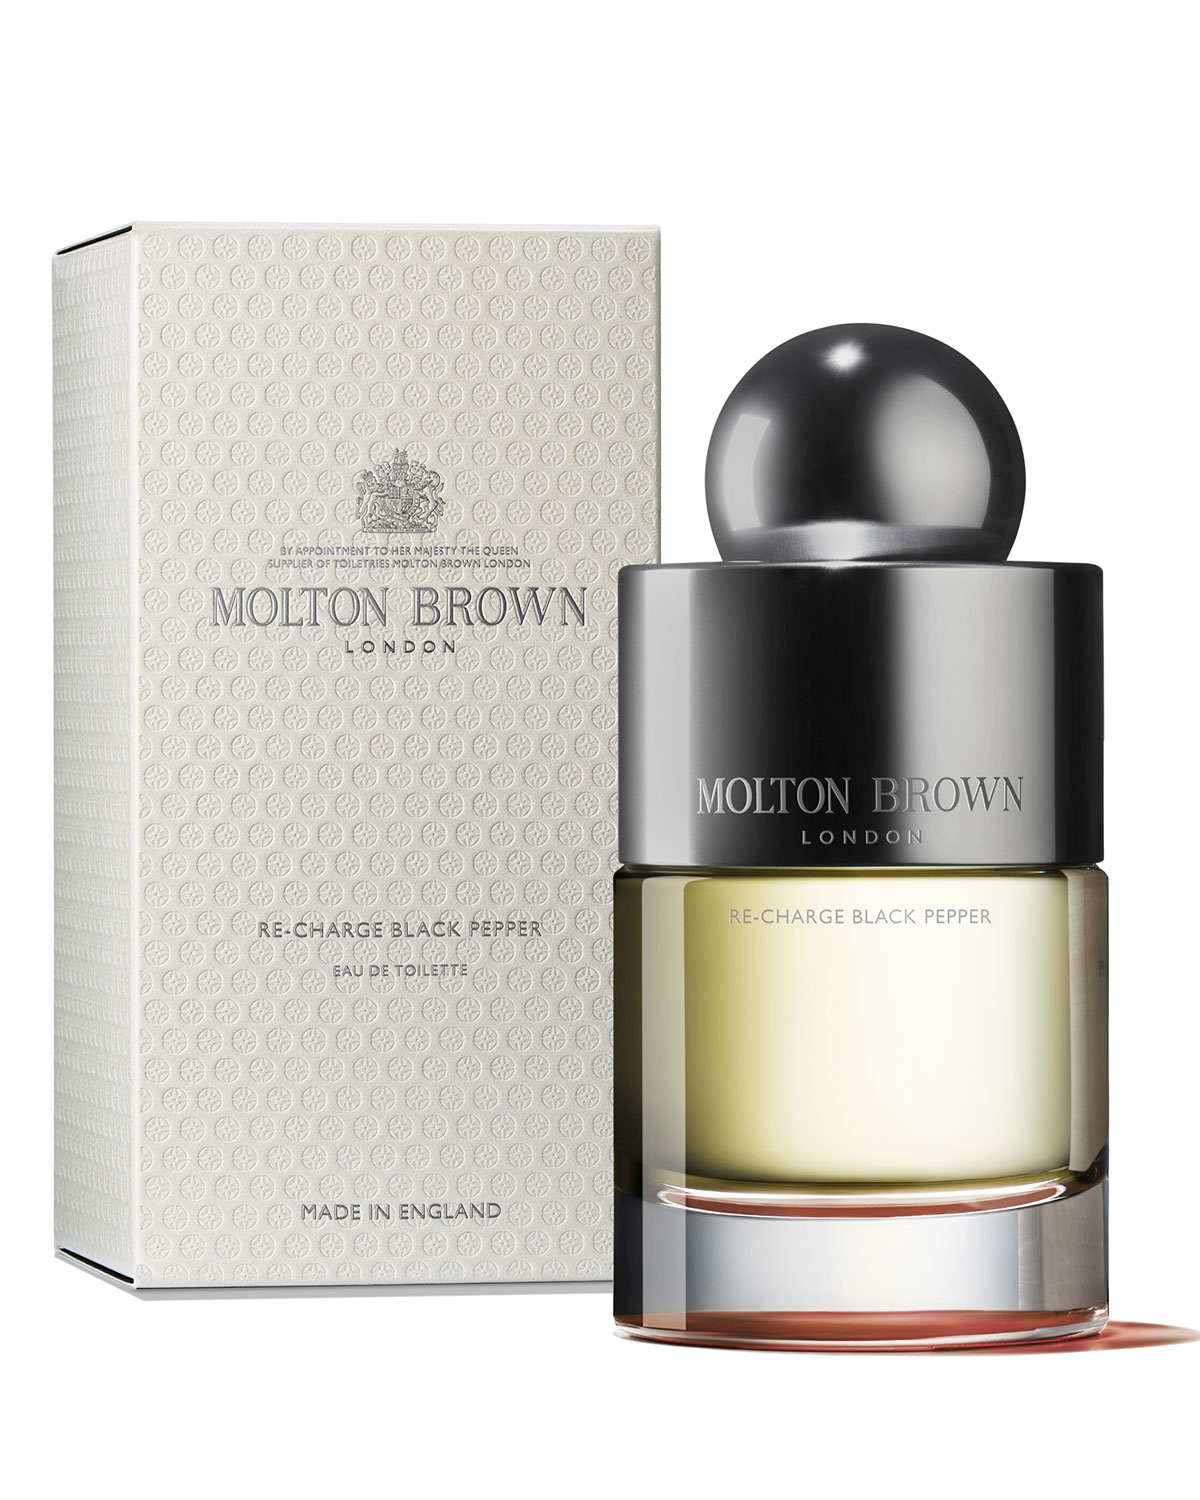 Molton Brown 3.3 oz. Re-Charge Black Pepper Eau de Toilette